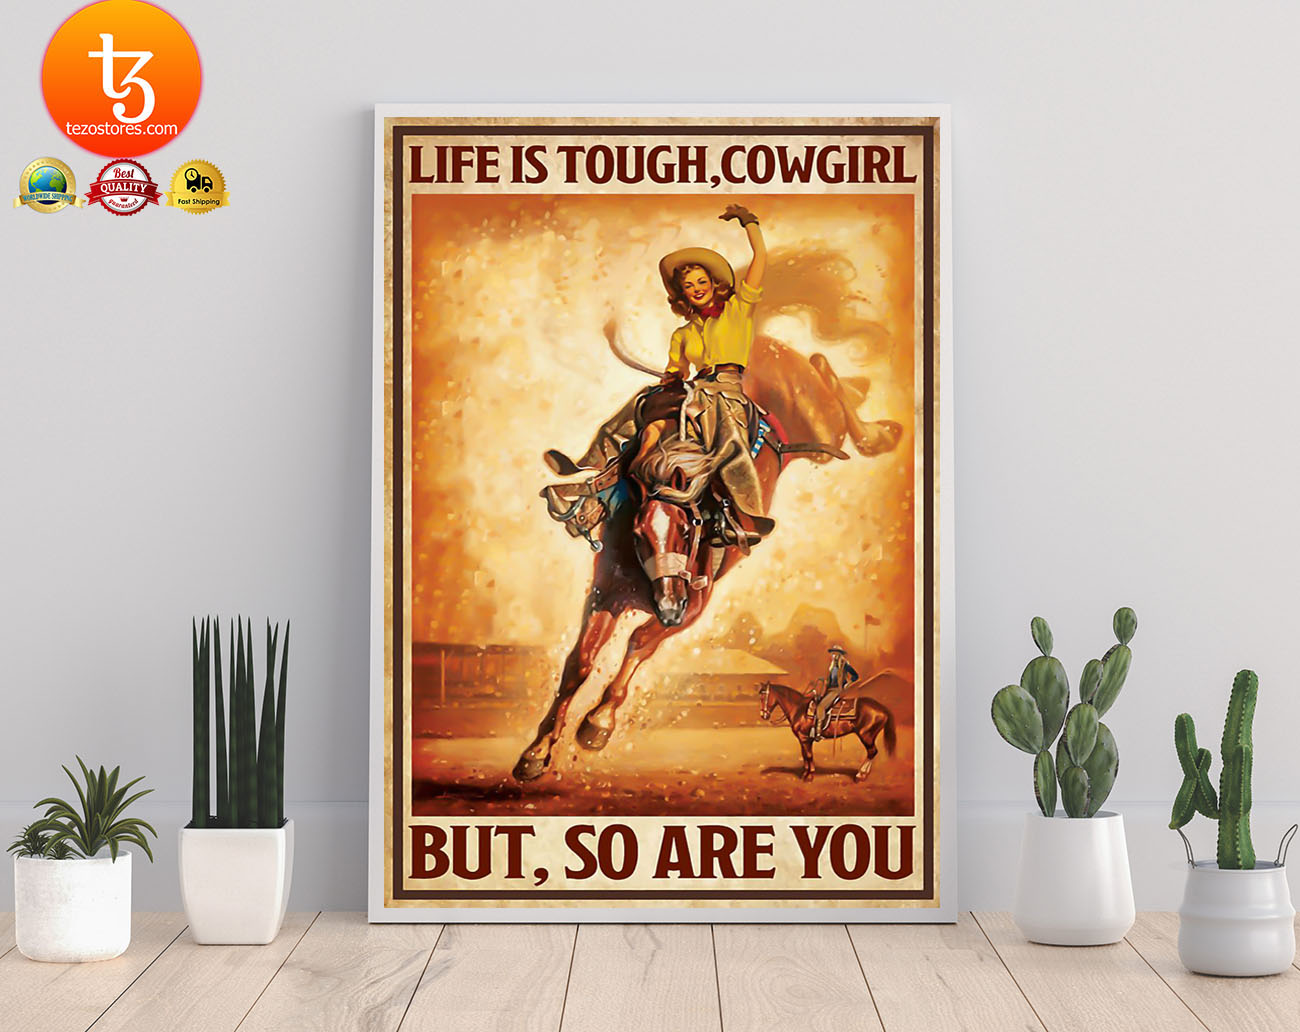 Life is touch cowgirl but so are you poster 21